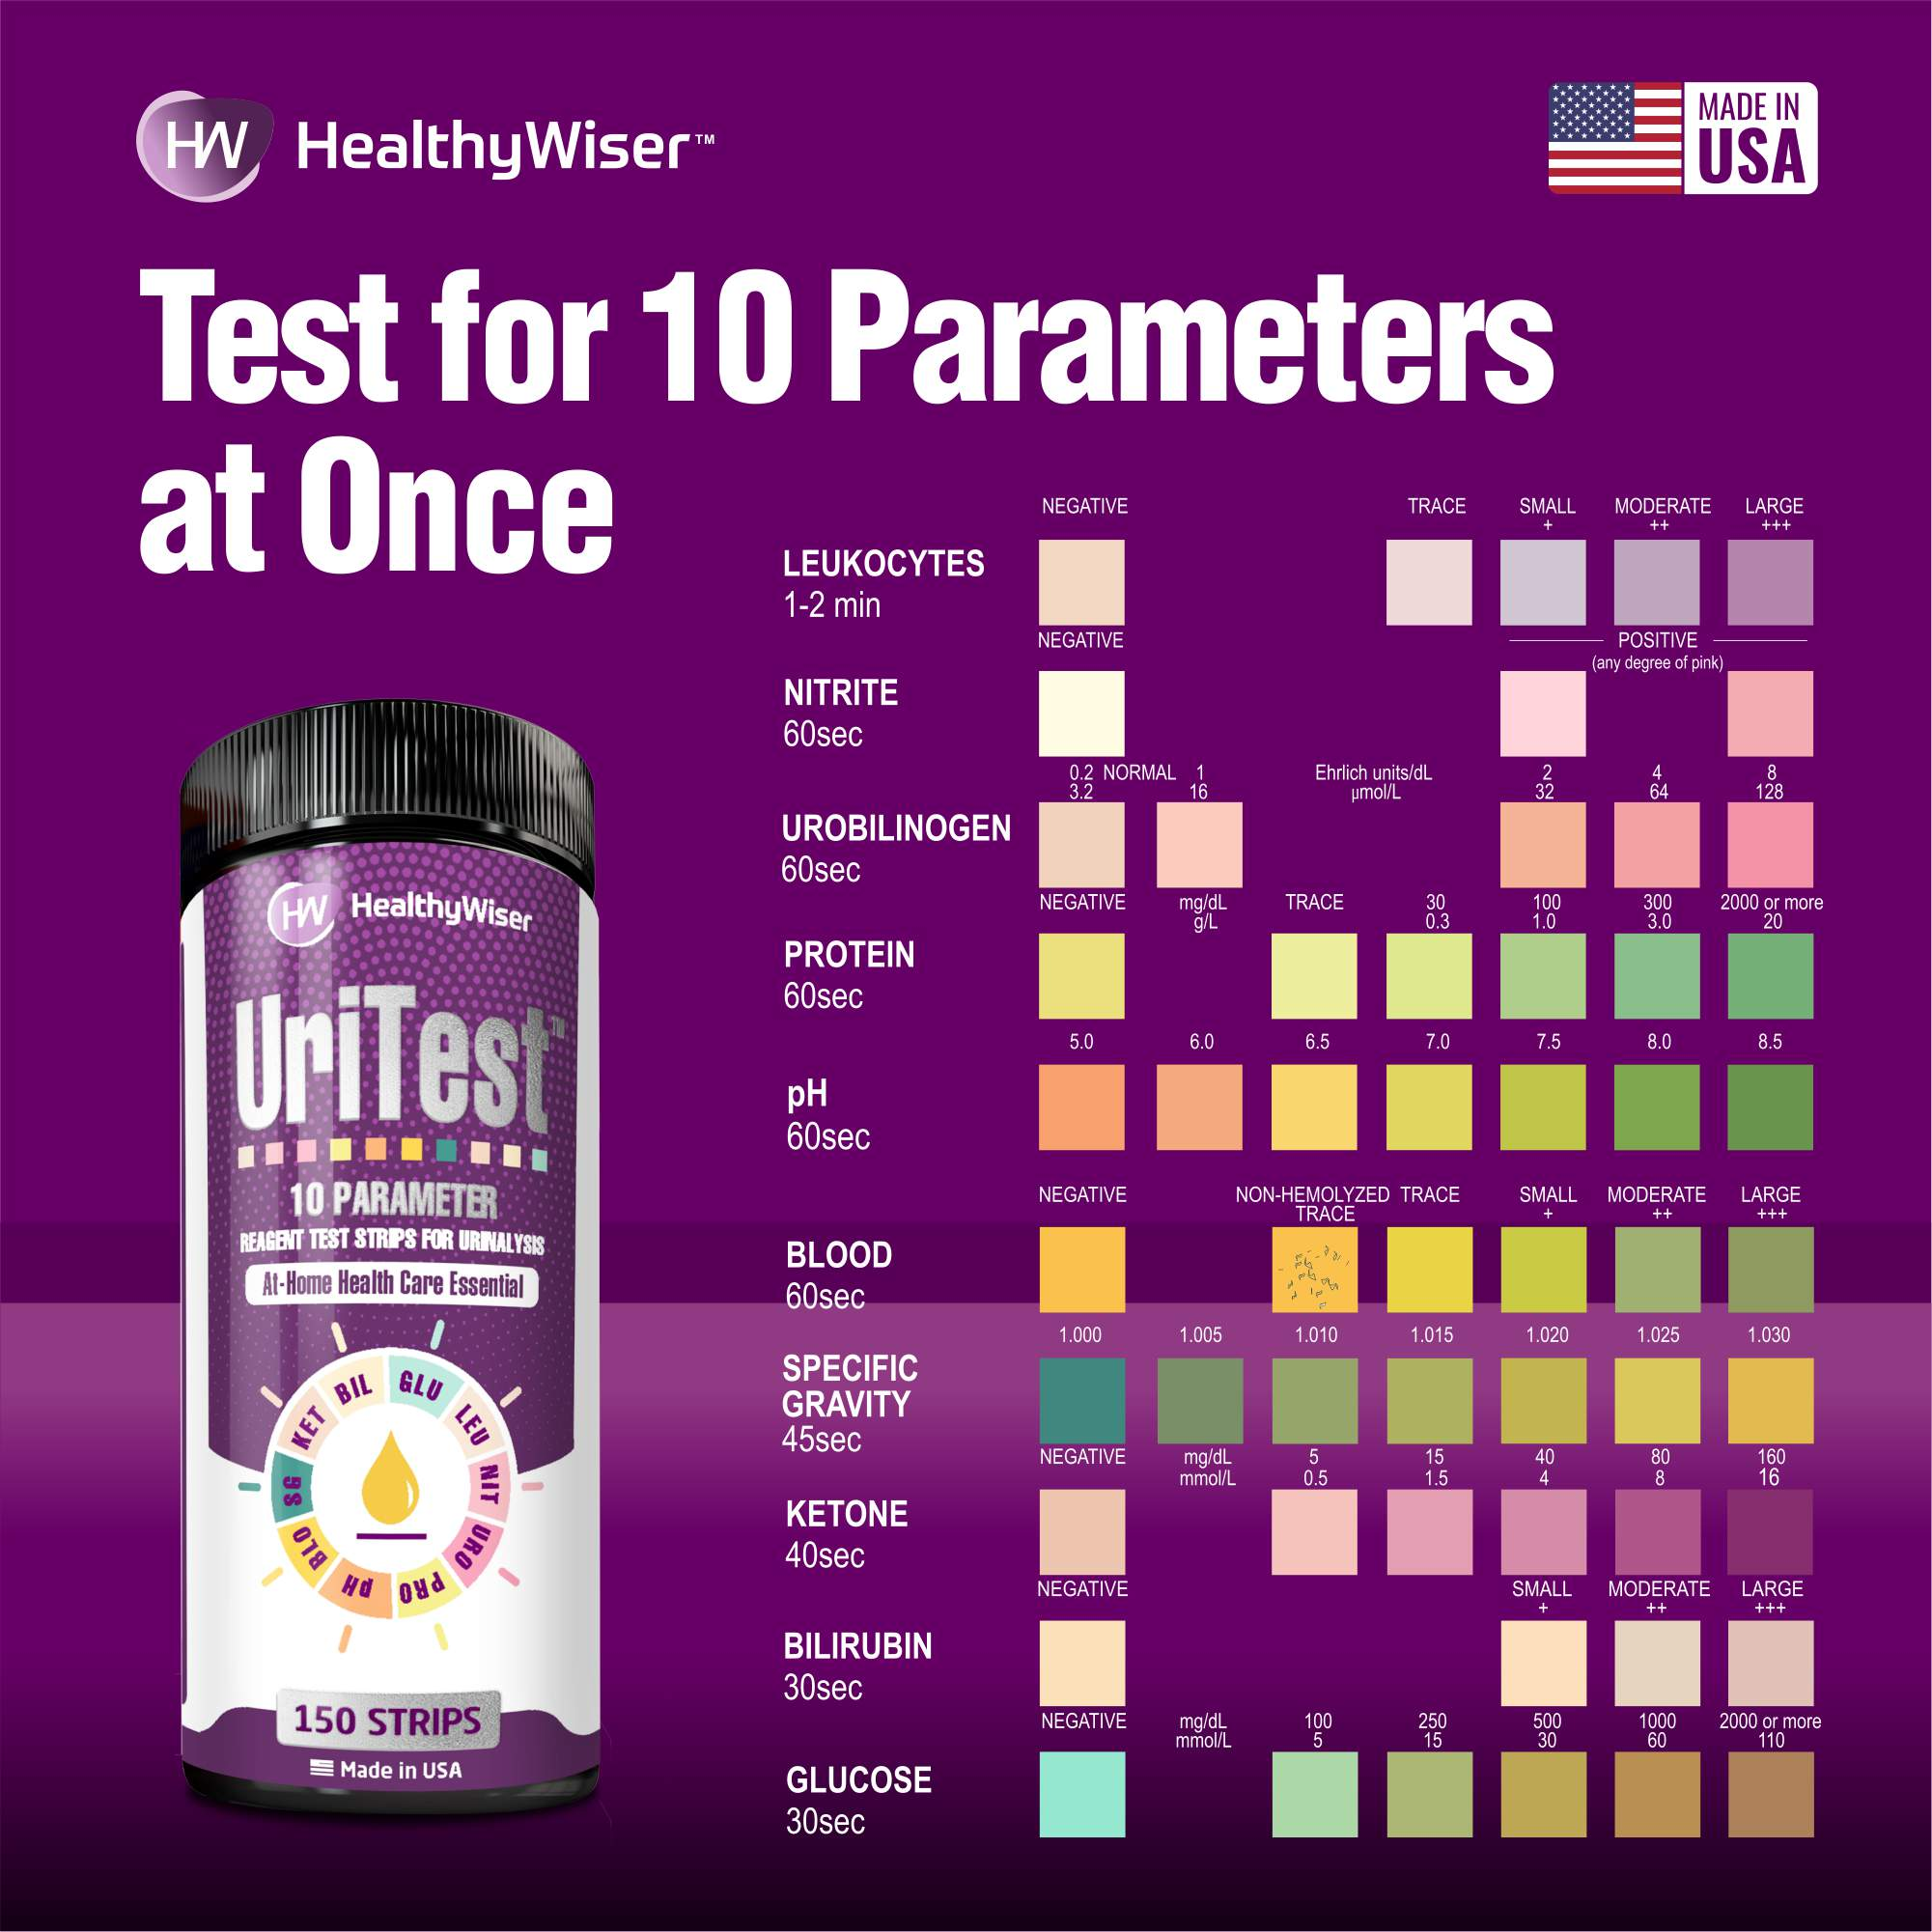 Keto Fast™ Ketone Test Strips 150ct - Made in USA - Easy to Read Sensitive Ketogenic Urinalysis Testing Sticks - Daily Ketones Measurement - Urine Keto Strips Ideal for Atkins, Paleo Diet & Diabetes.